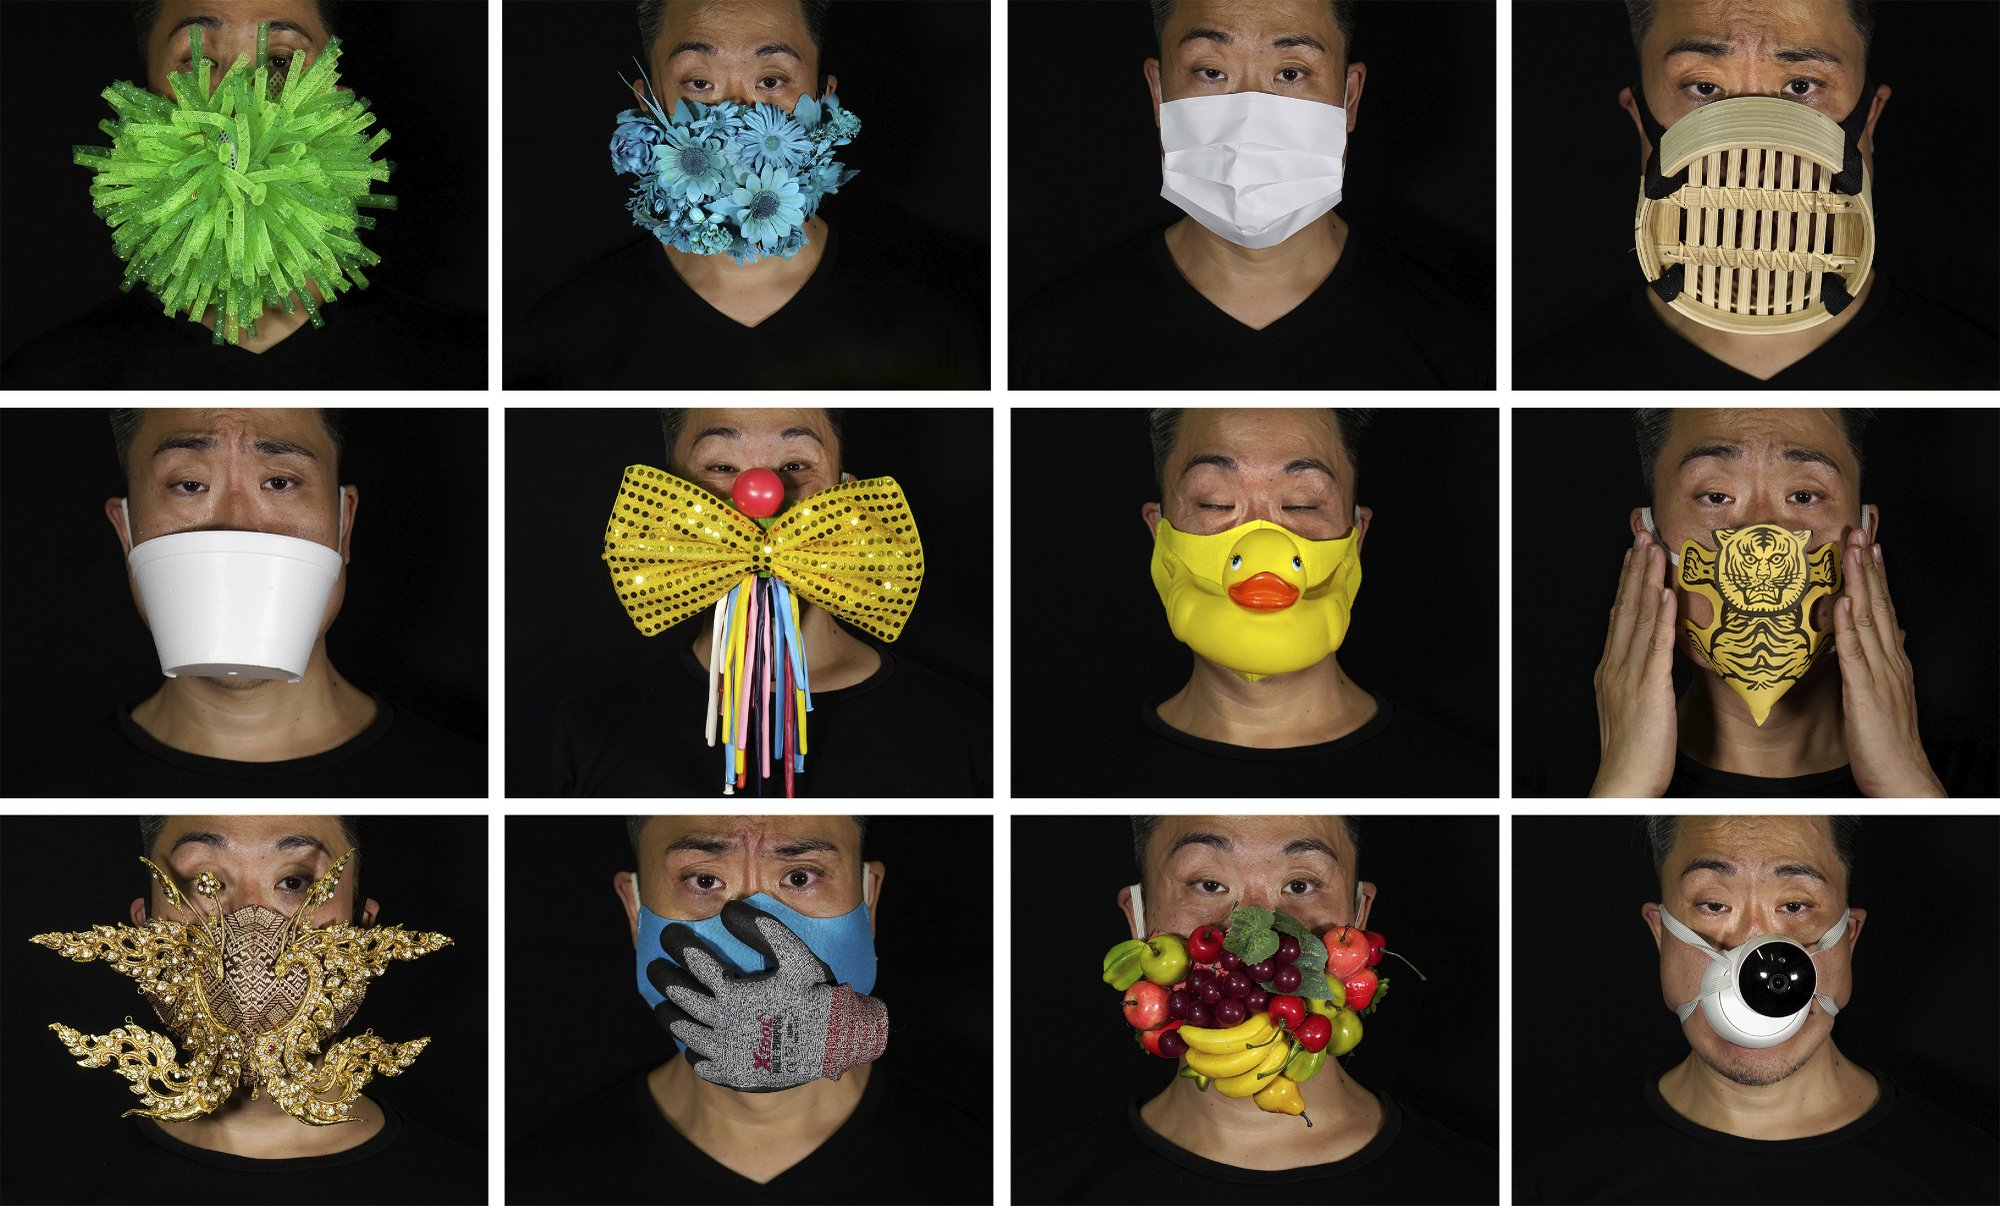 Edmond Kok's creations: a number of eye-catching masks with a hidden meaning. (AP Photo/Vincent Yu)